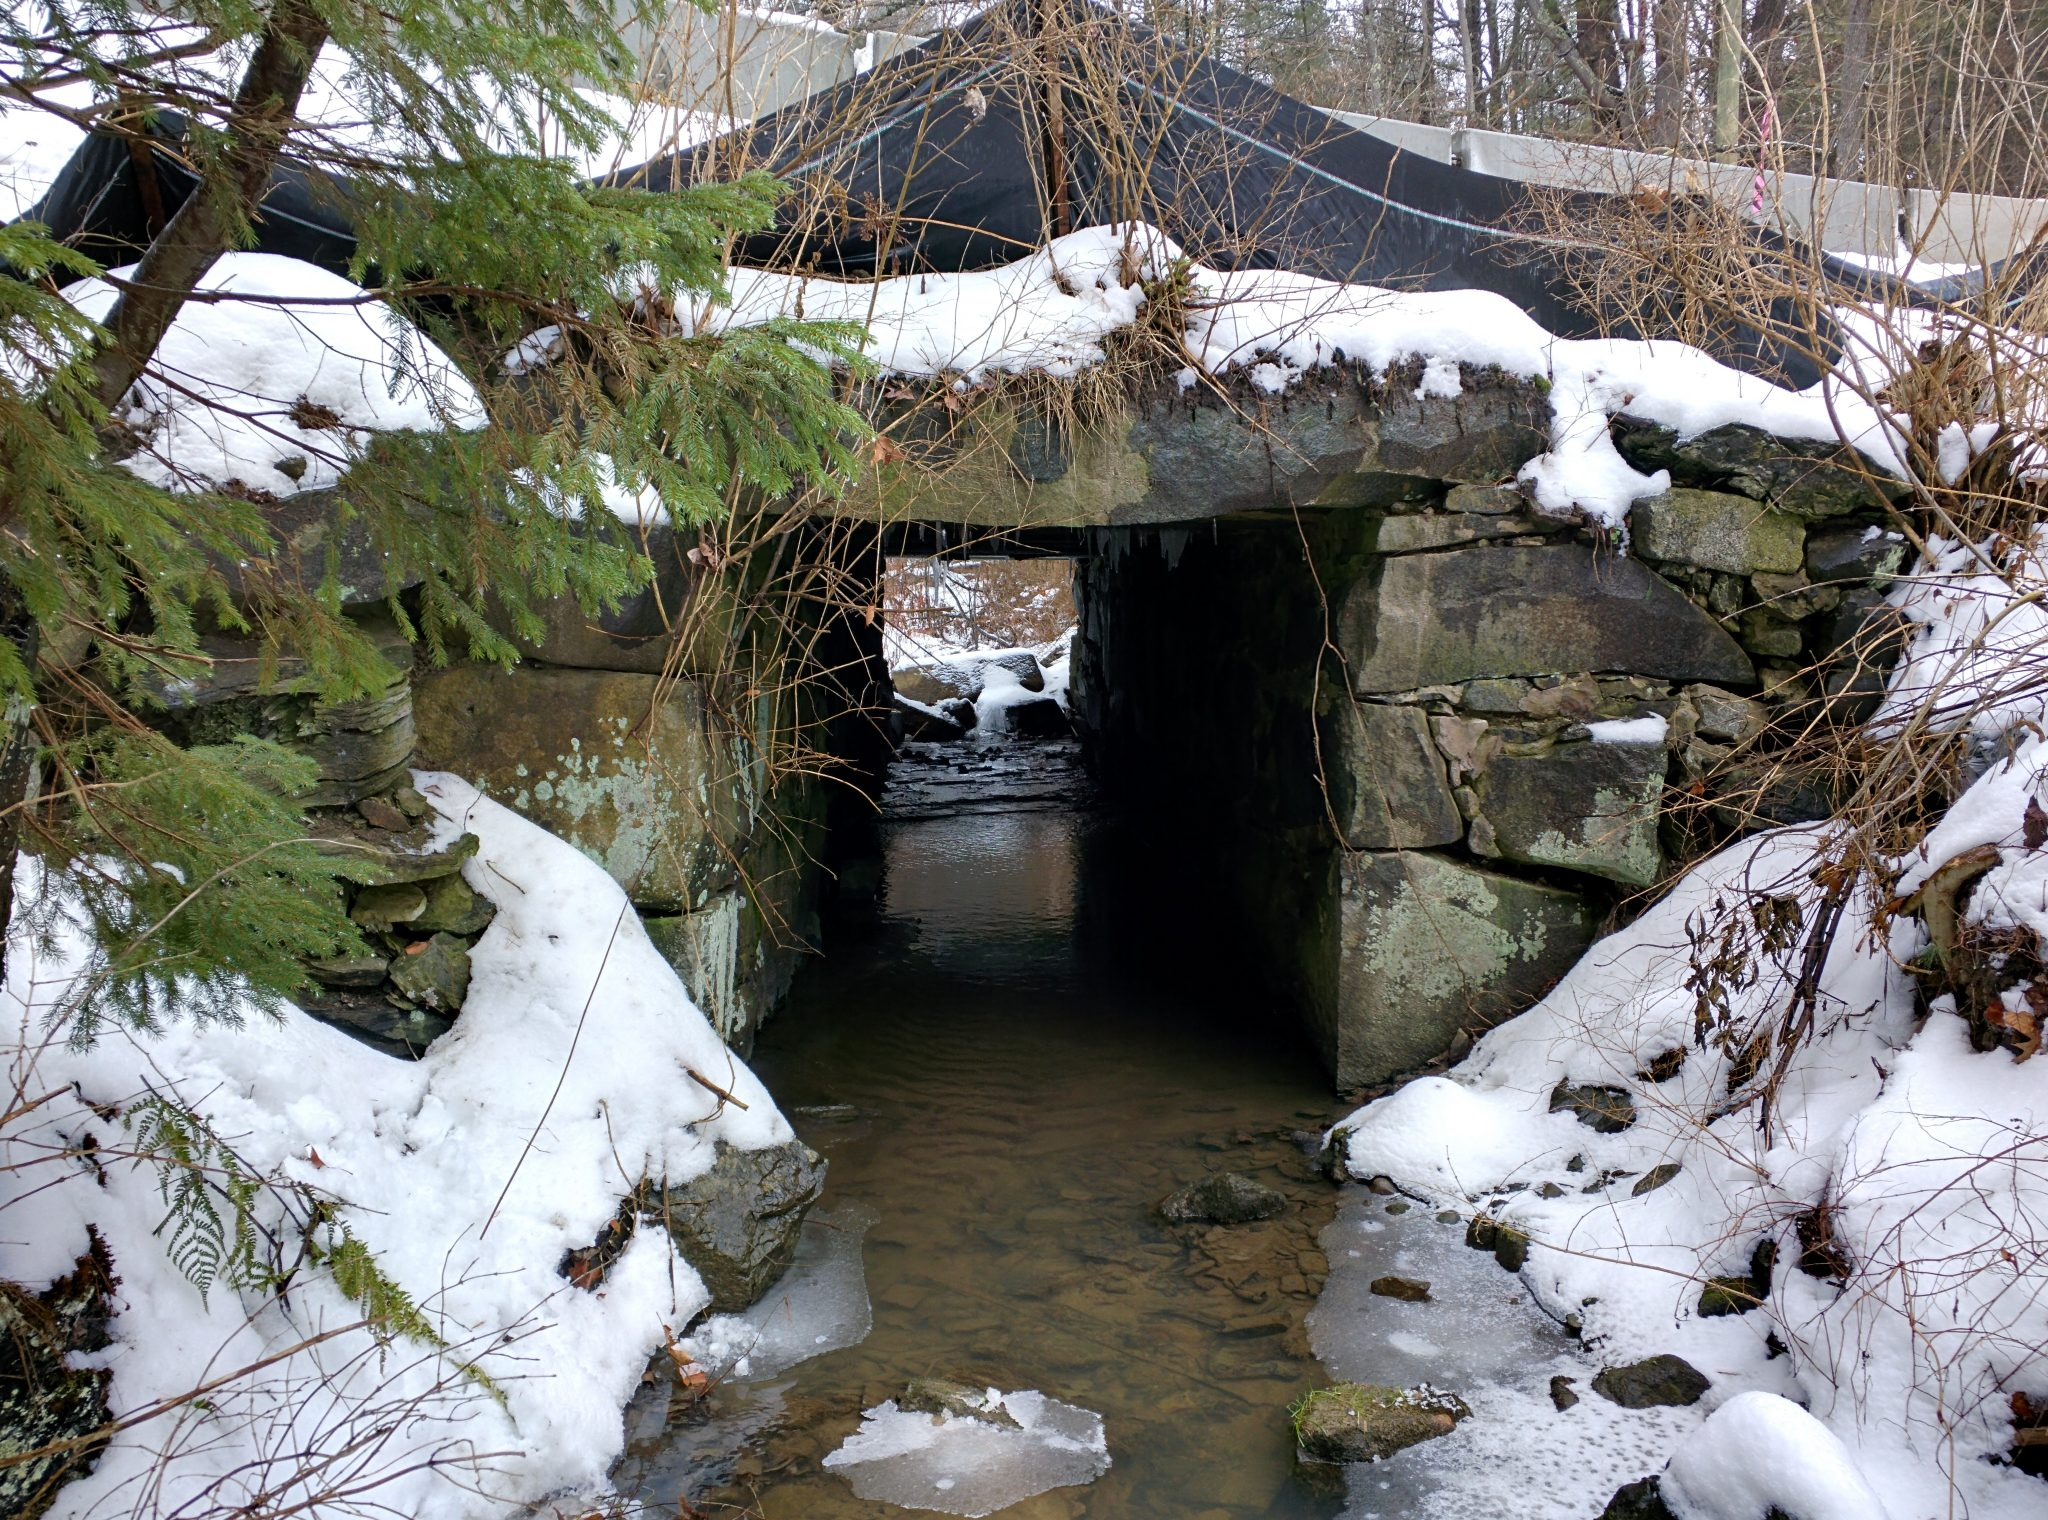 Sligo Road culvert in Rollinsford, NH